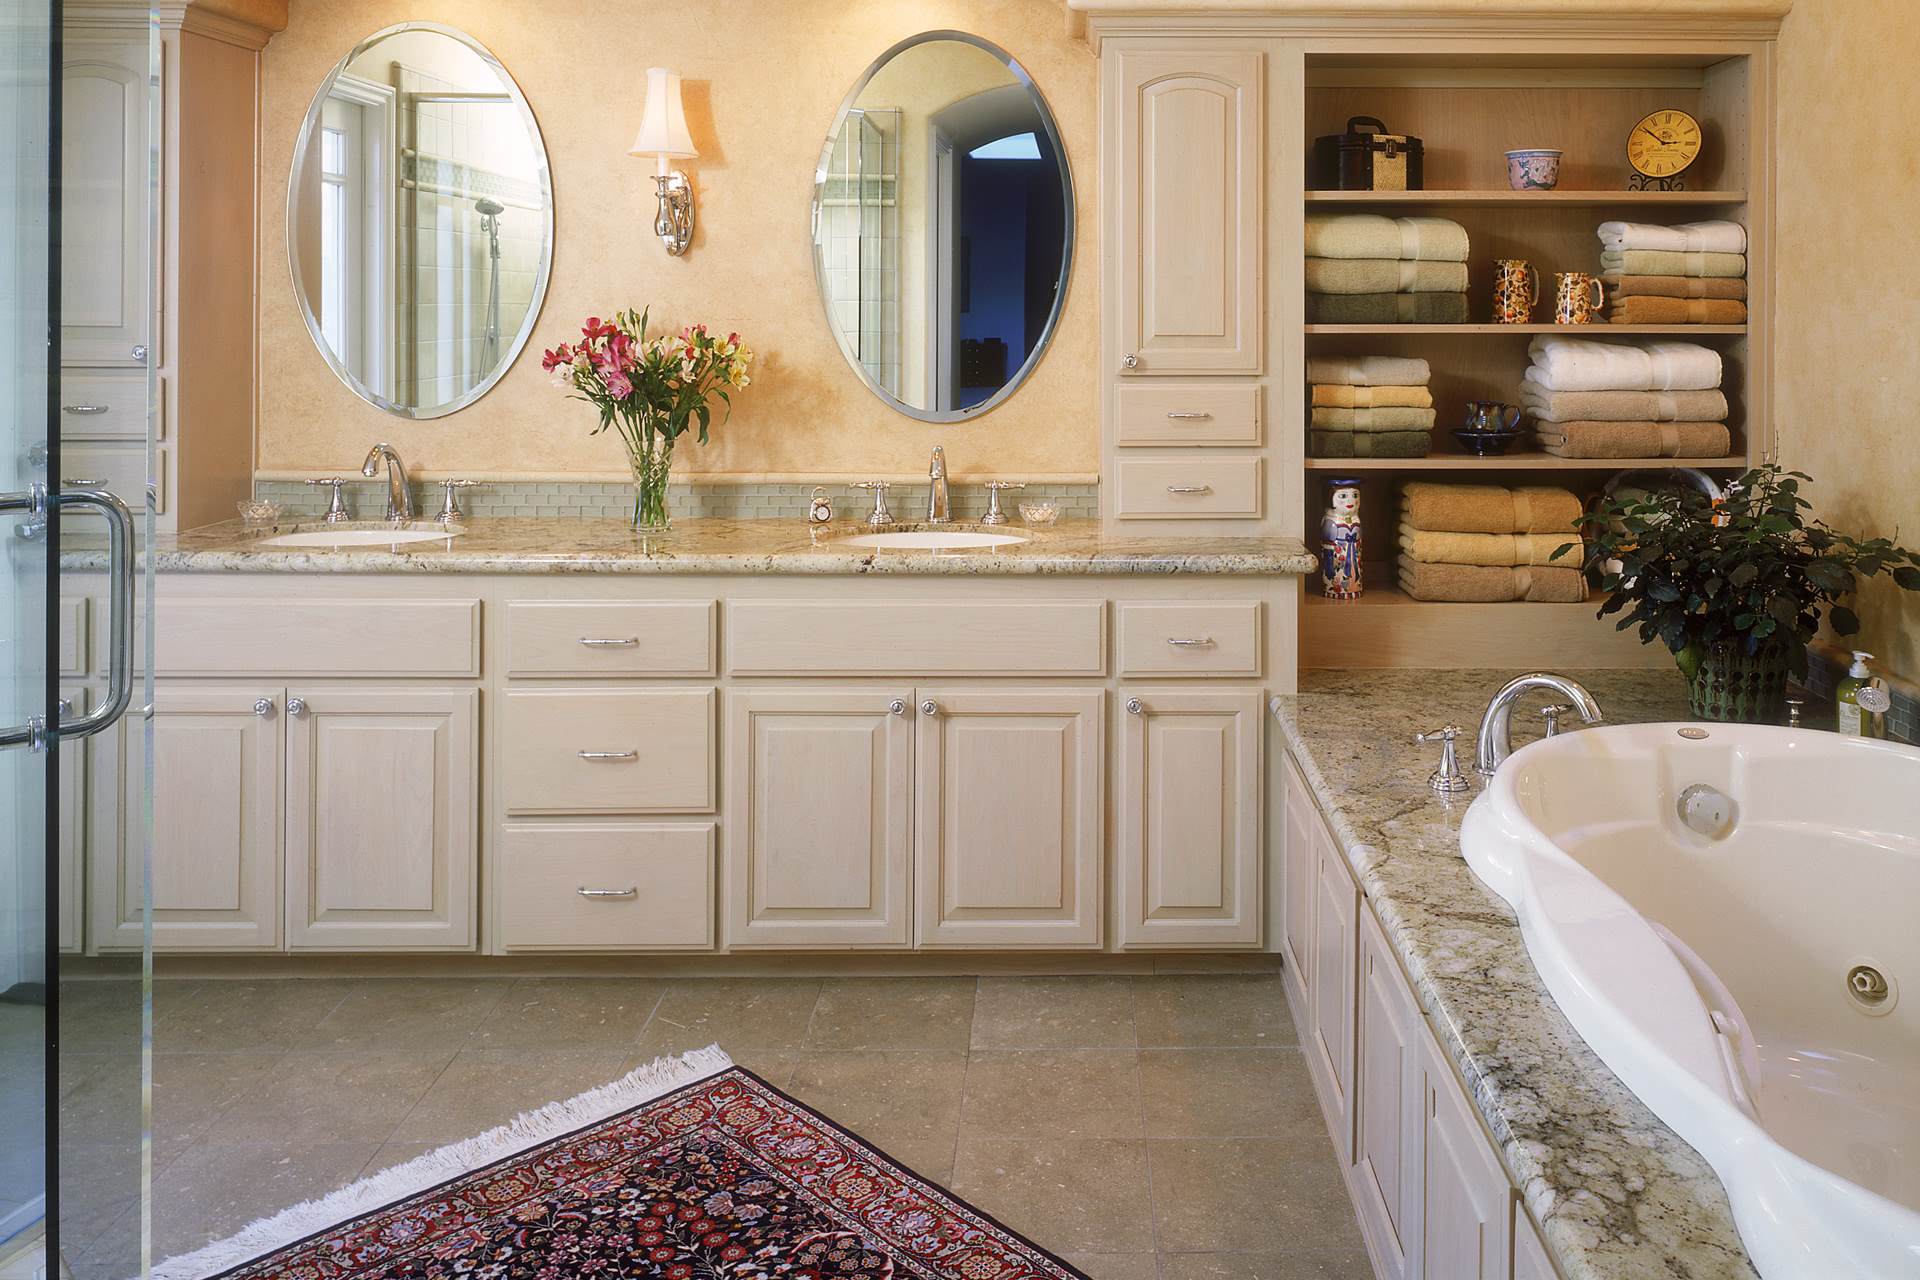 traditional bathroom cabinets custom bathroom cabinets curved sinks two level 27277